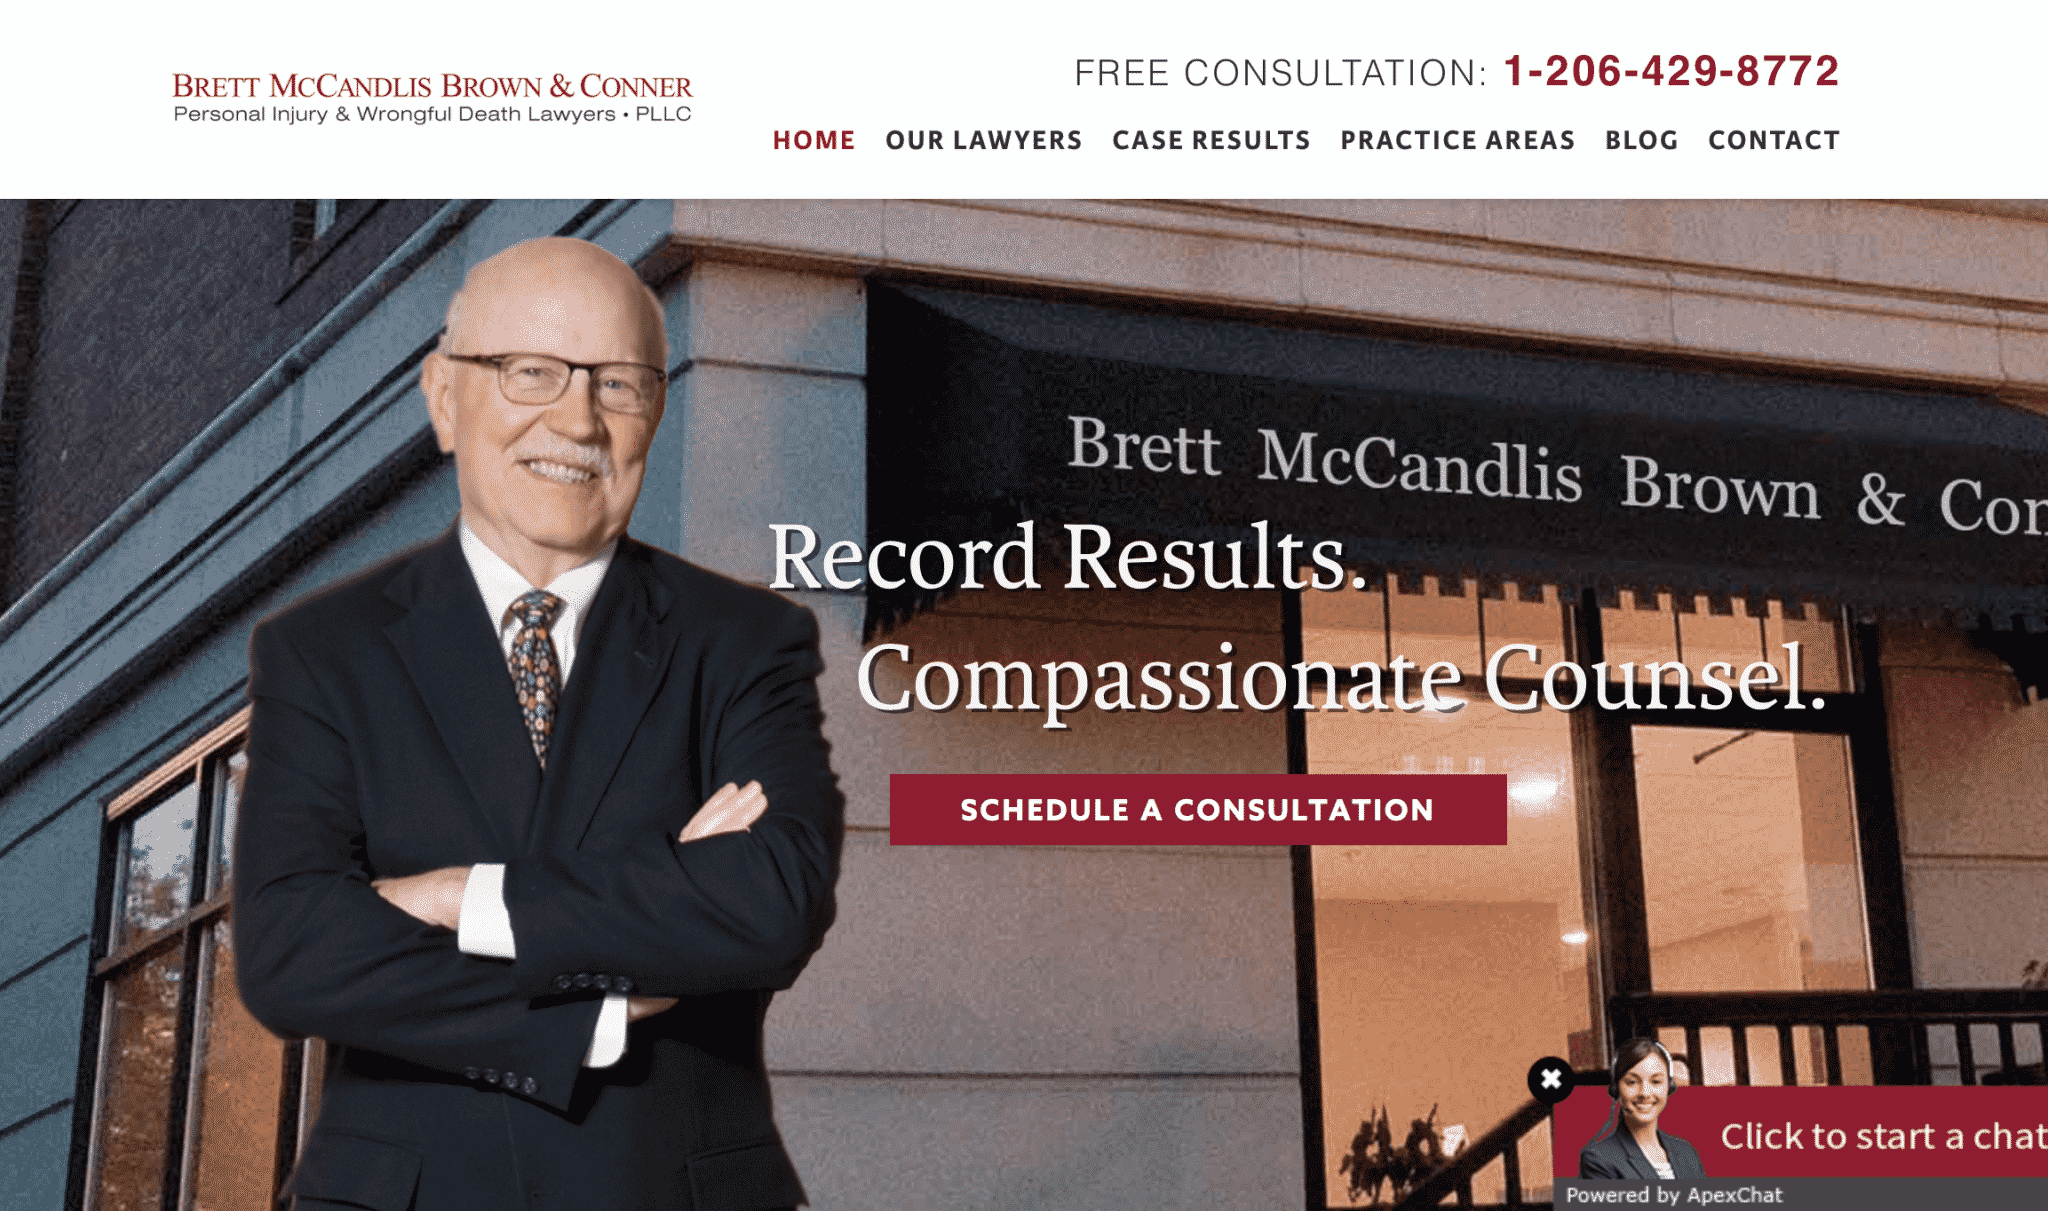 law firm website design tips